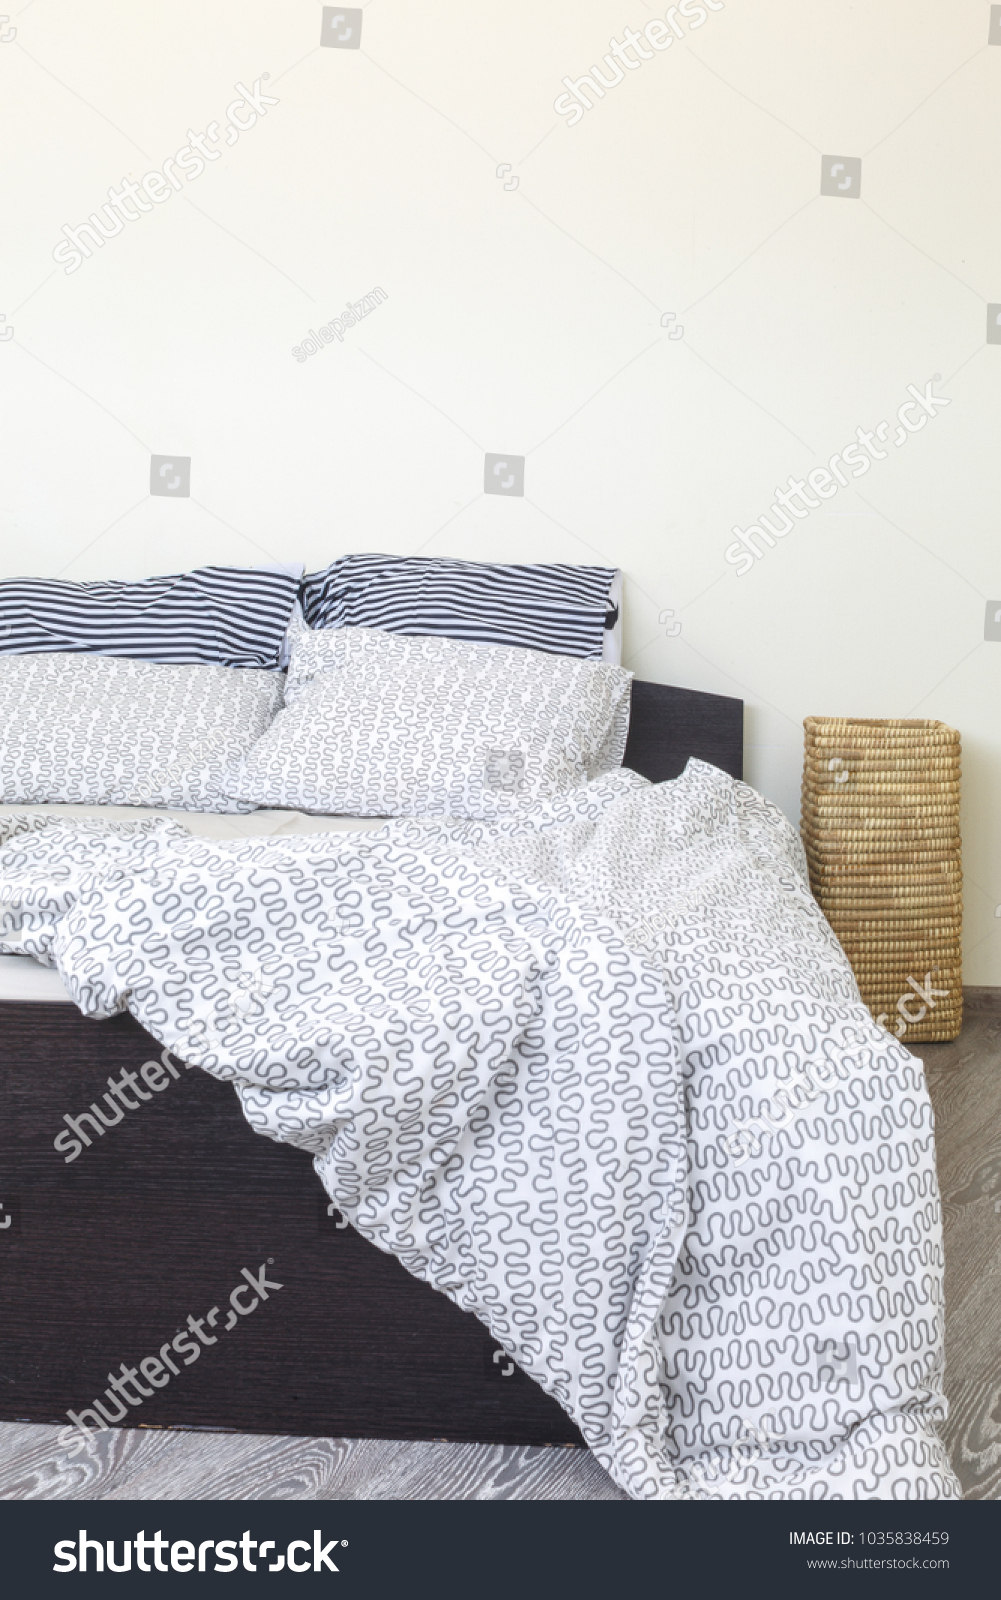 natural light morning bedroom interior, bedclothes unclean, bright and cozy, minimalistic design #1035838459